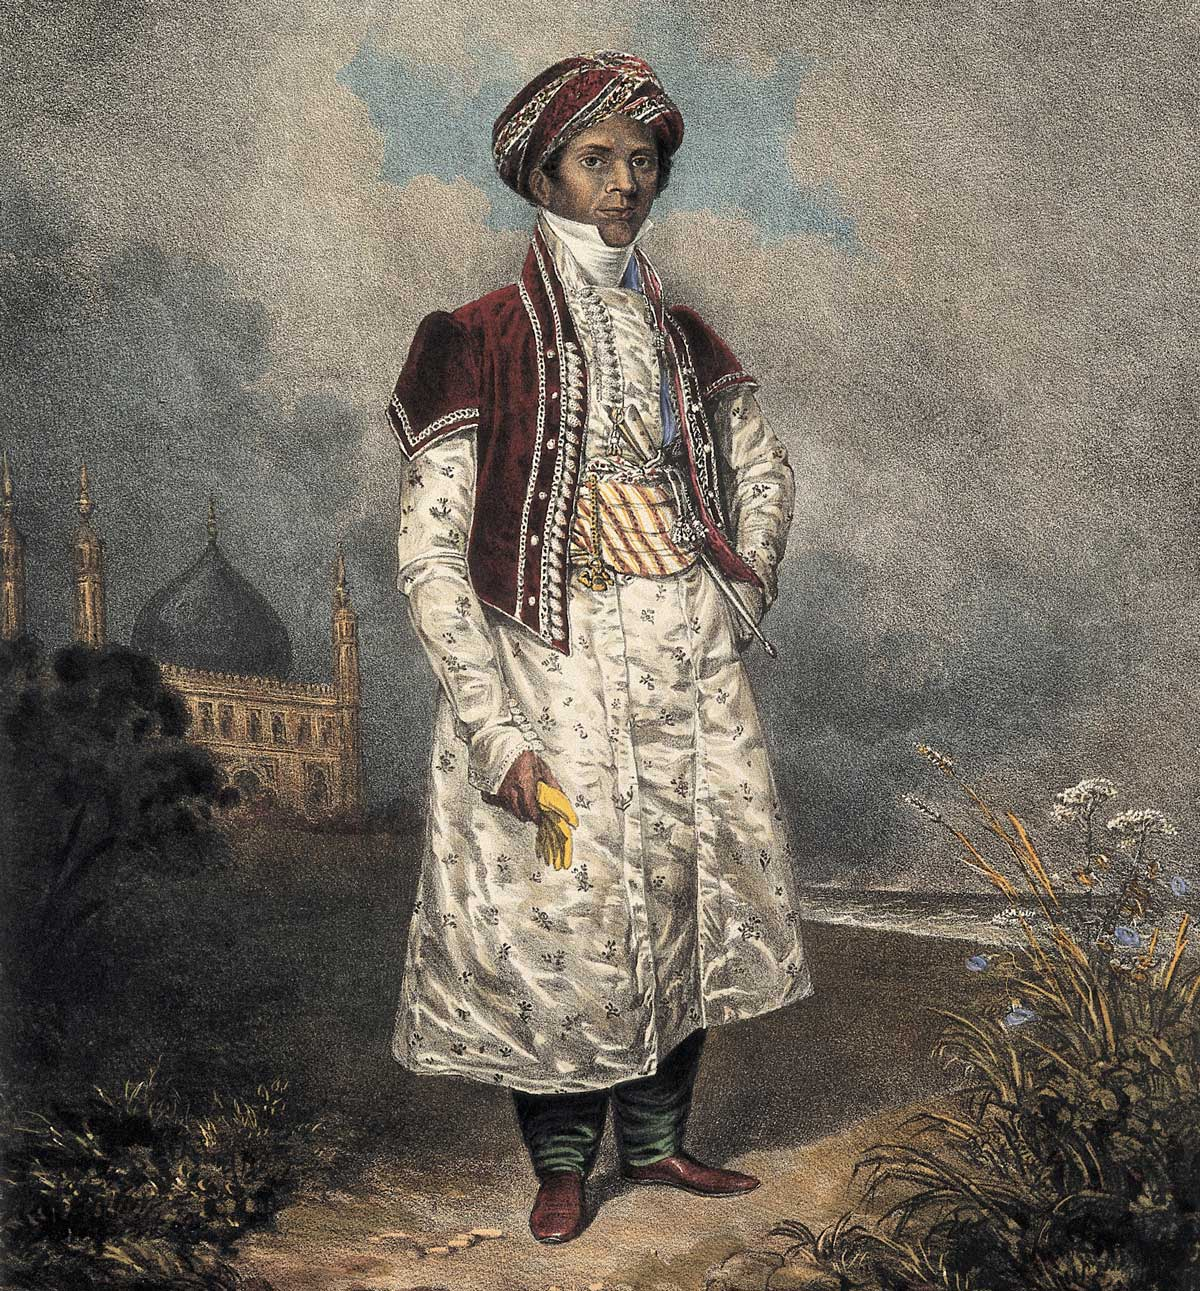 Sake Deen Mahomed. Coloured lithograph by T. M. Baynes, c. 1820. Wellcome Collection,